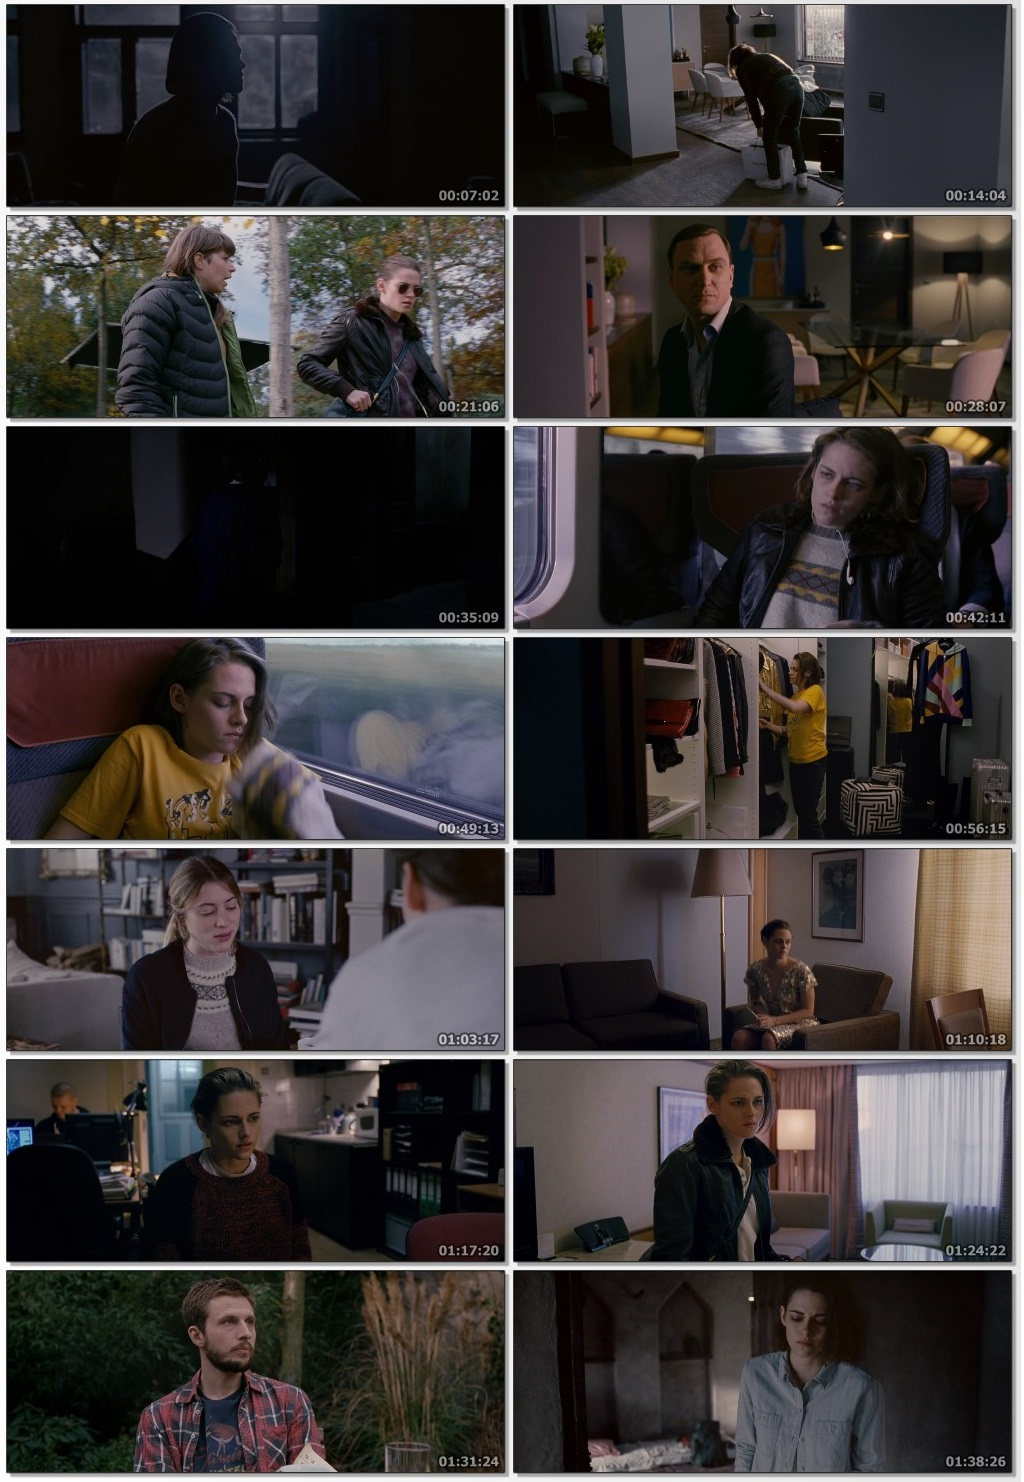 personal shopper movie download free, personal shopper movie download 480p, personal shopper movie download in hindi dubbed, personal shopper movie download 720p, personal shopper movie download 300mb